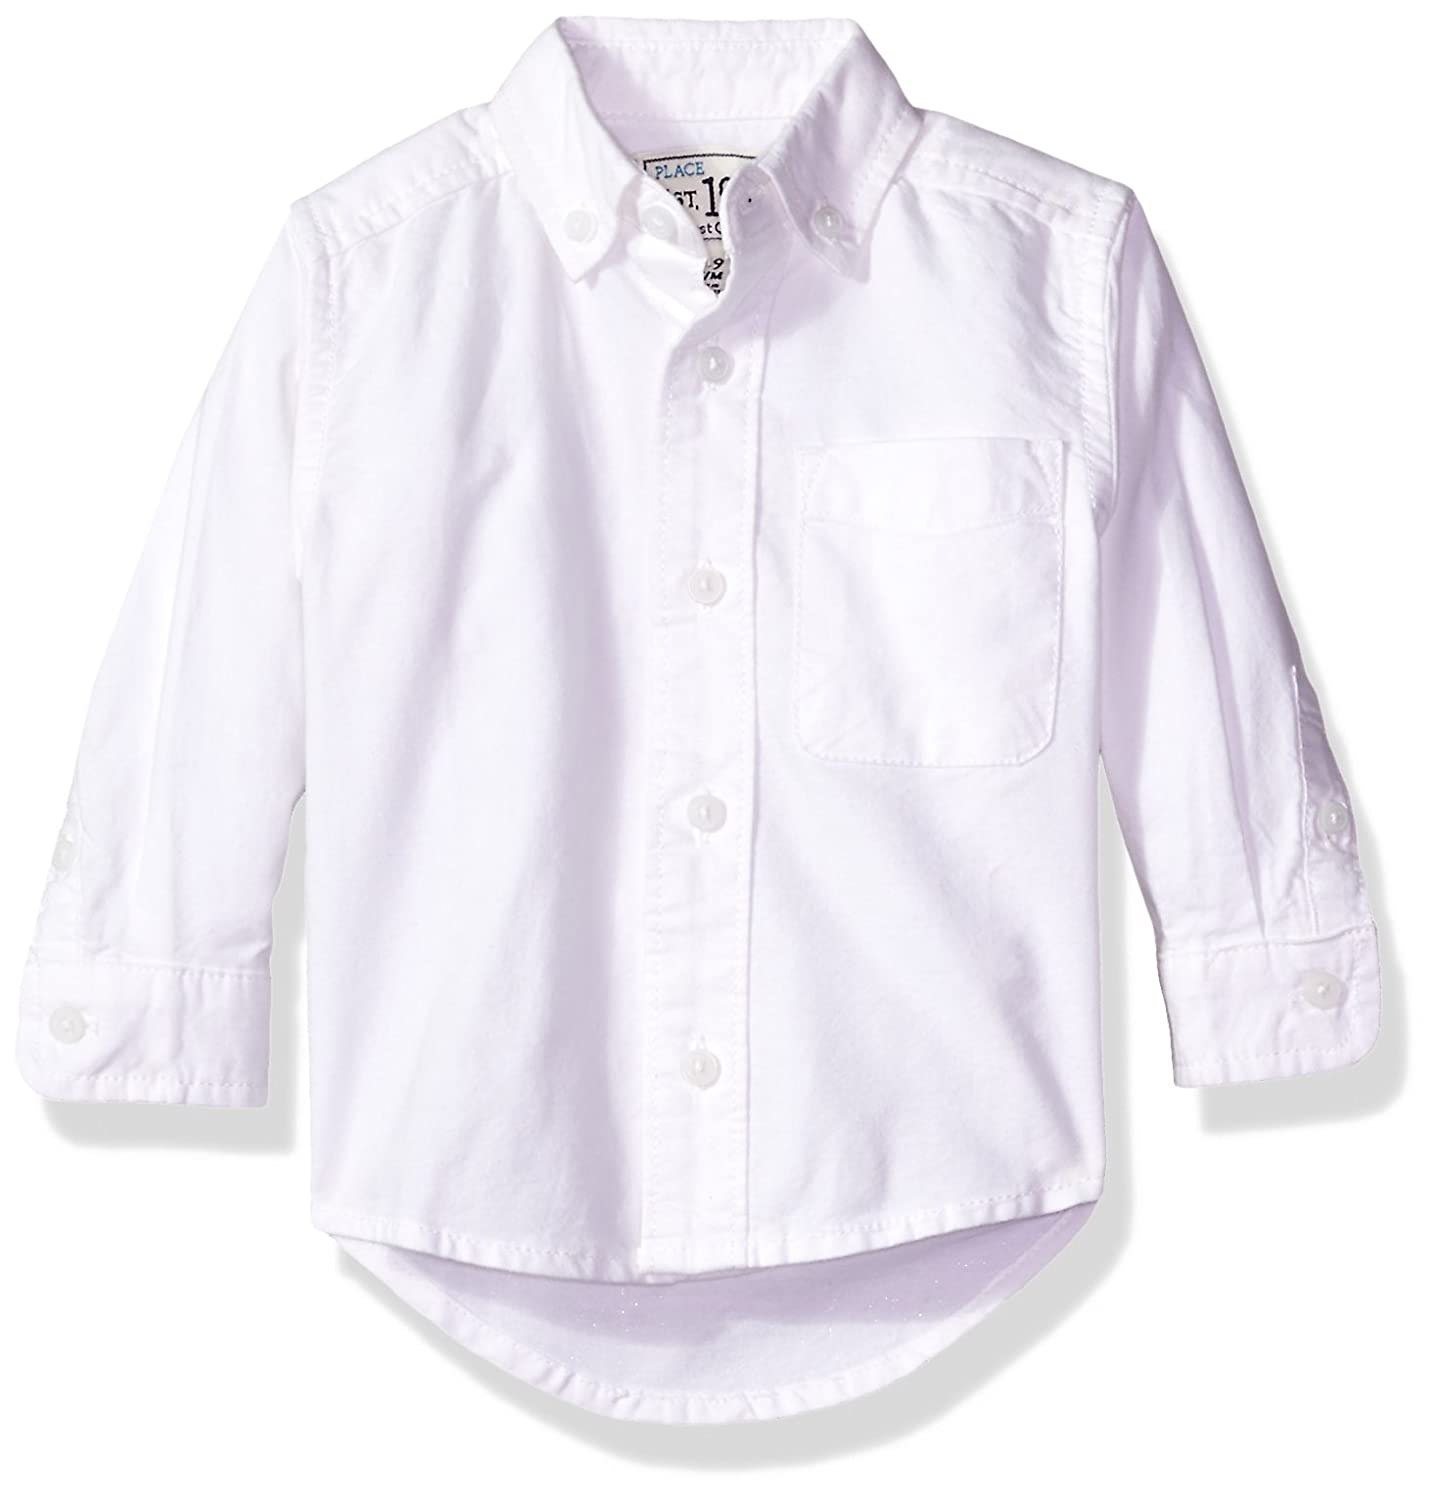 The Childrens Place Baby Boys Uniform Long Sleeve Oxford Shirt